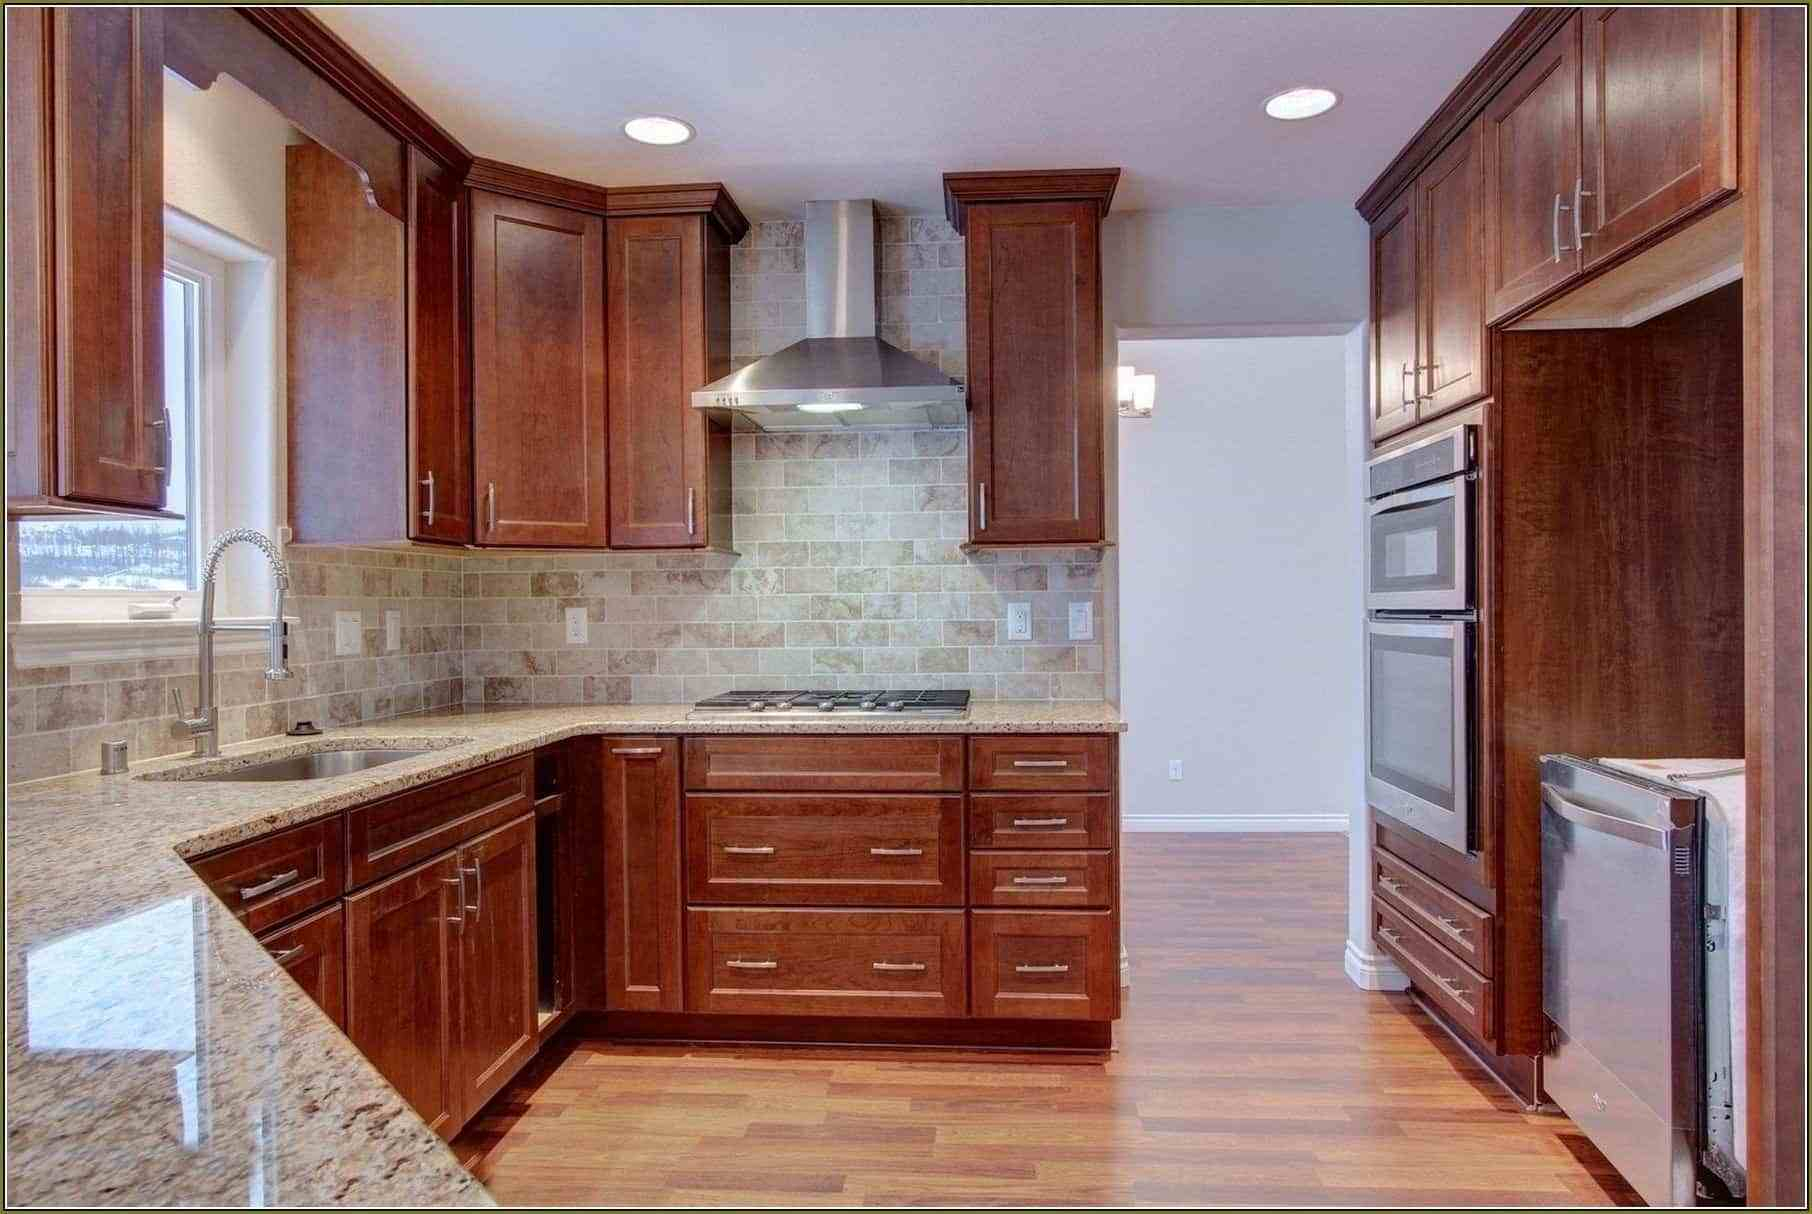 10 Unique Crown Molding Ideas For Kitchen crown molding for kitchen cabinets transforming home how to add 2020